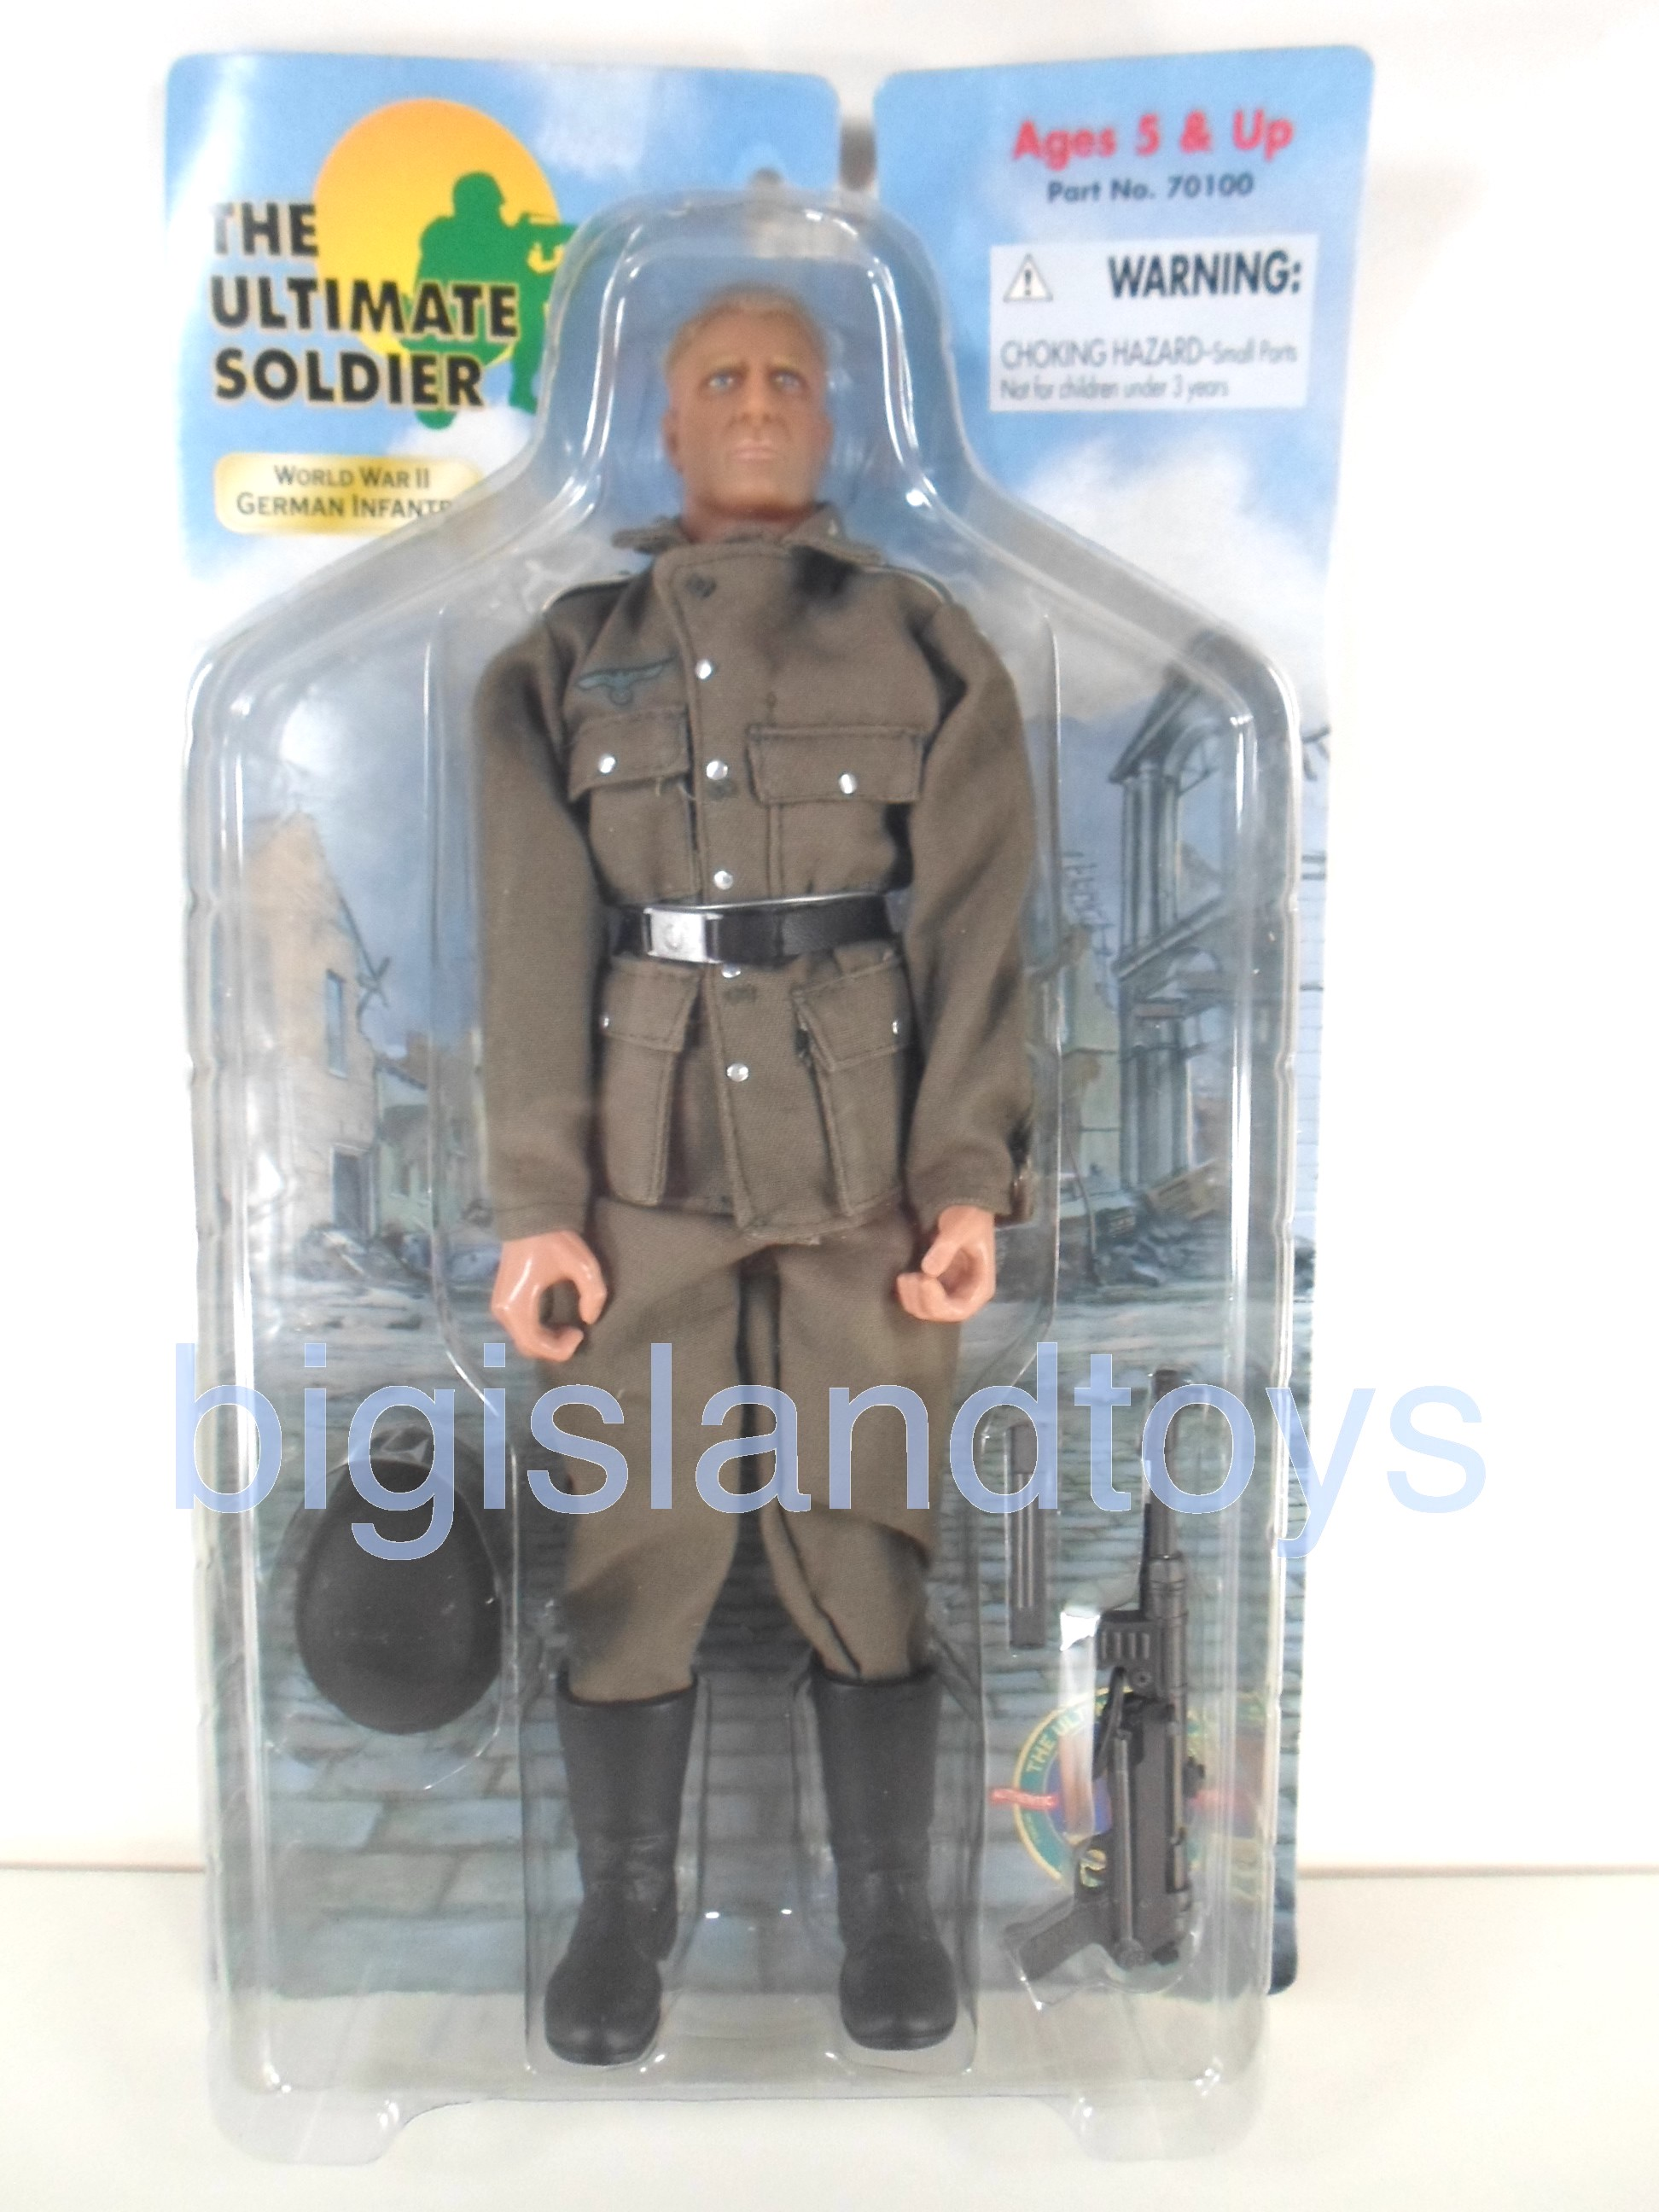 The Ultimate Soldier     German Infantry